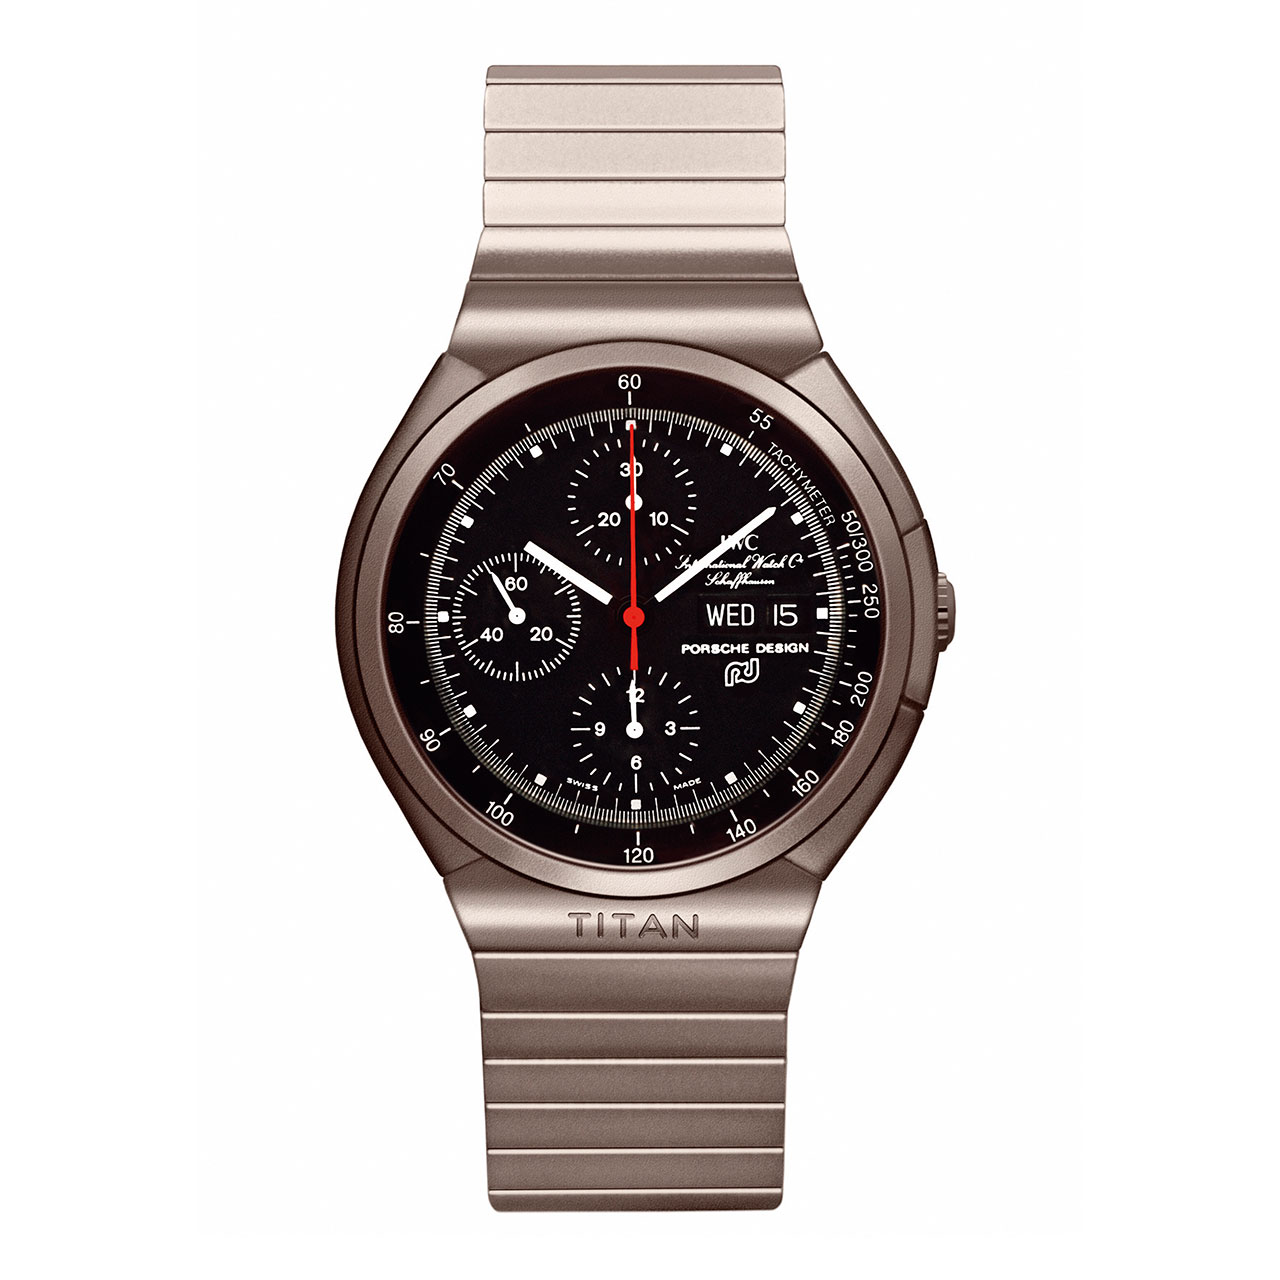 timepieces made by Porsche Design